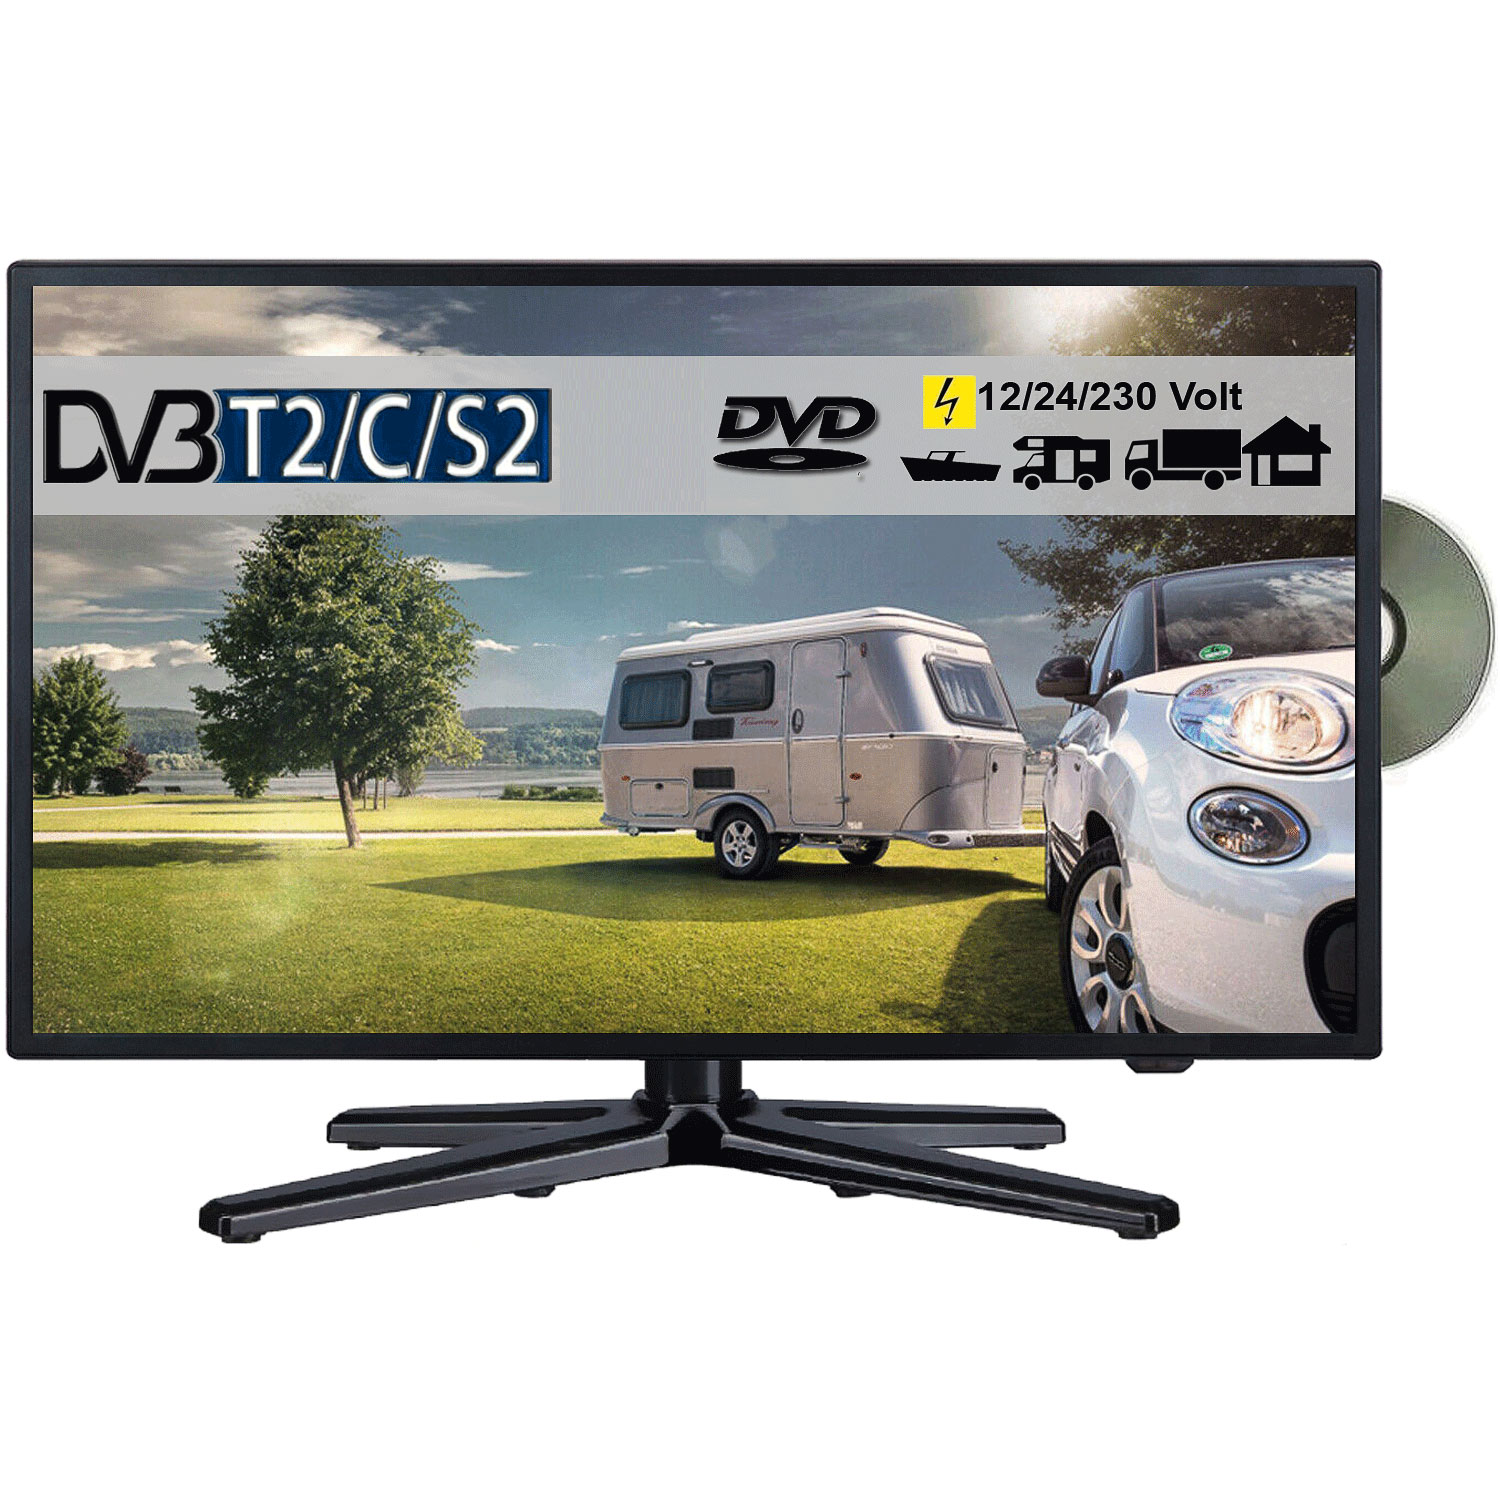 reflexion ldd 197 led full hd fernseher 19 zoll 48 cm tv. Black Bedroom Furniture Sets. Home Design Ideas